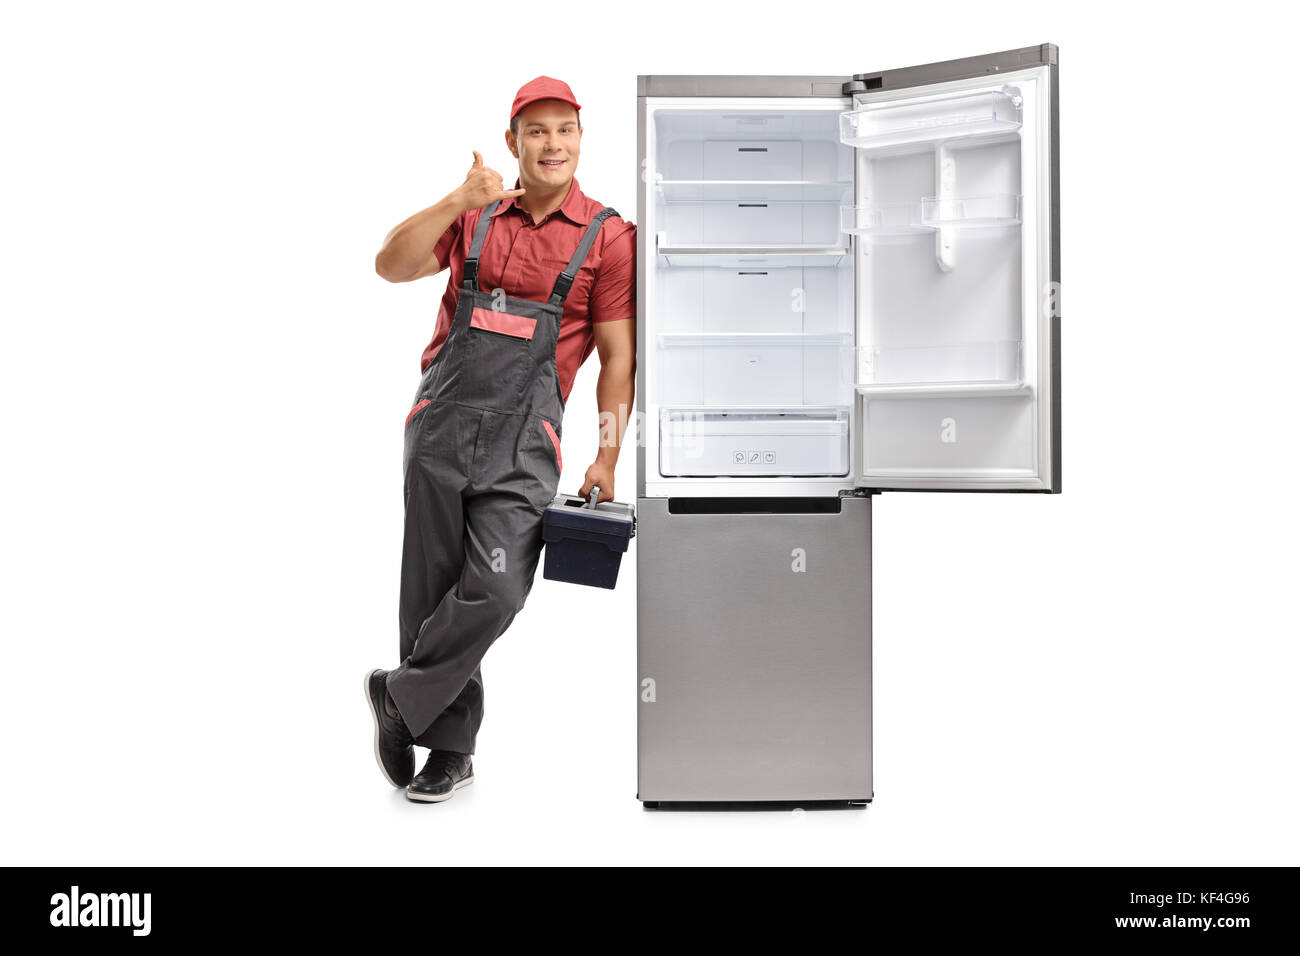 Full length portrait of a serviceman leaning against an empty fridge and making a call me gesture isolated on white - Stock Image